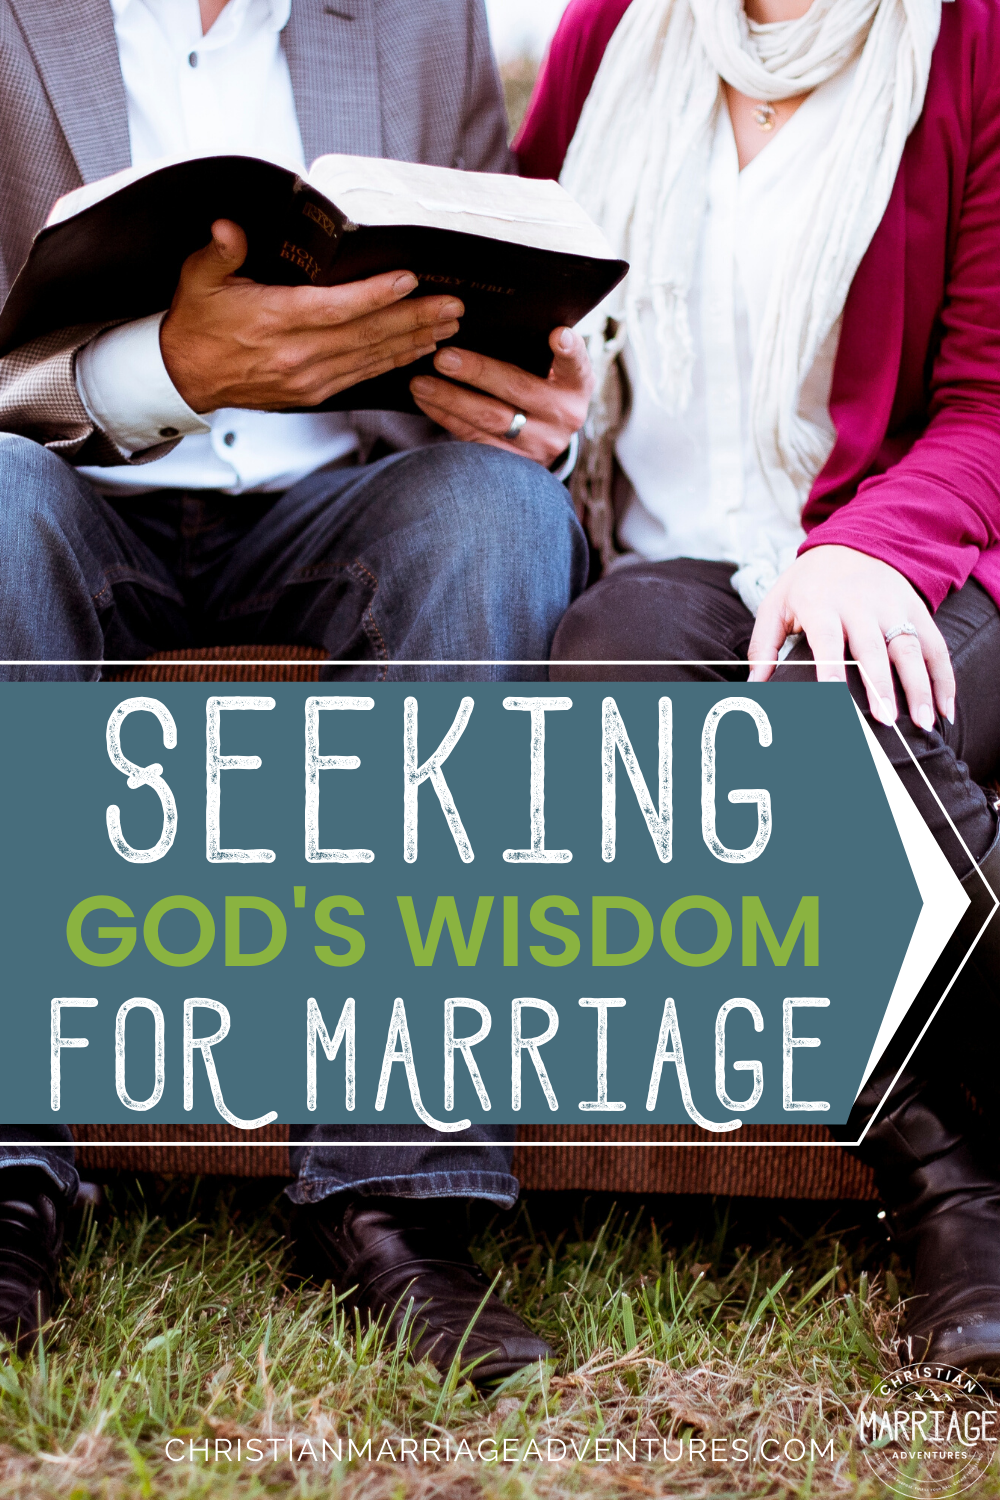 Seeking God's wisdom for marriage is imperative for Christian couples to fully experience the covenant relationship God has designed for husband and wife.